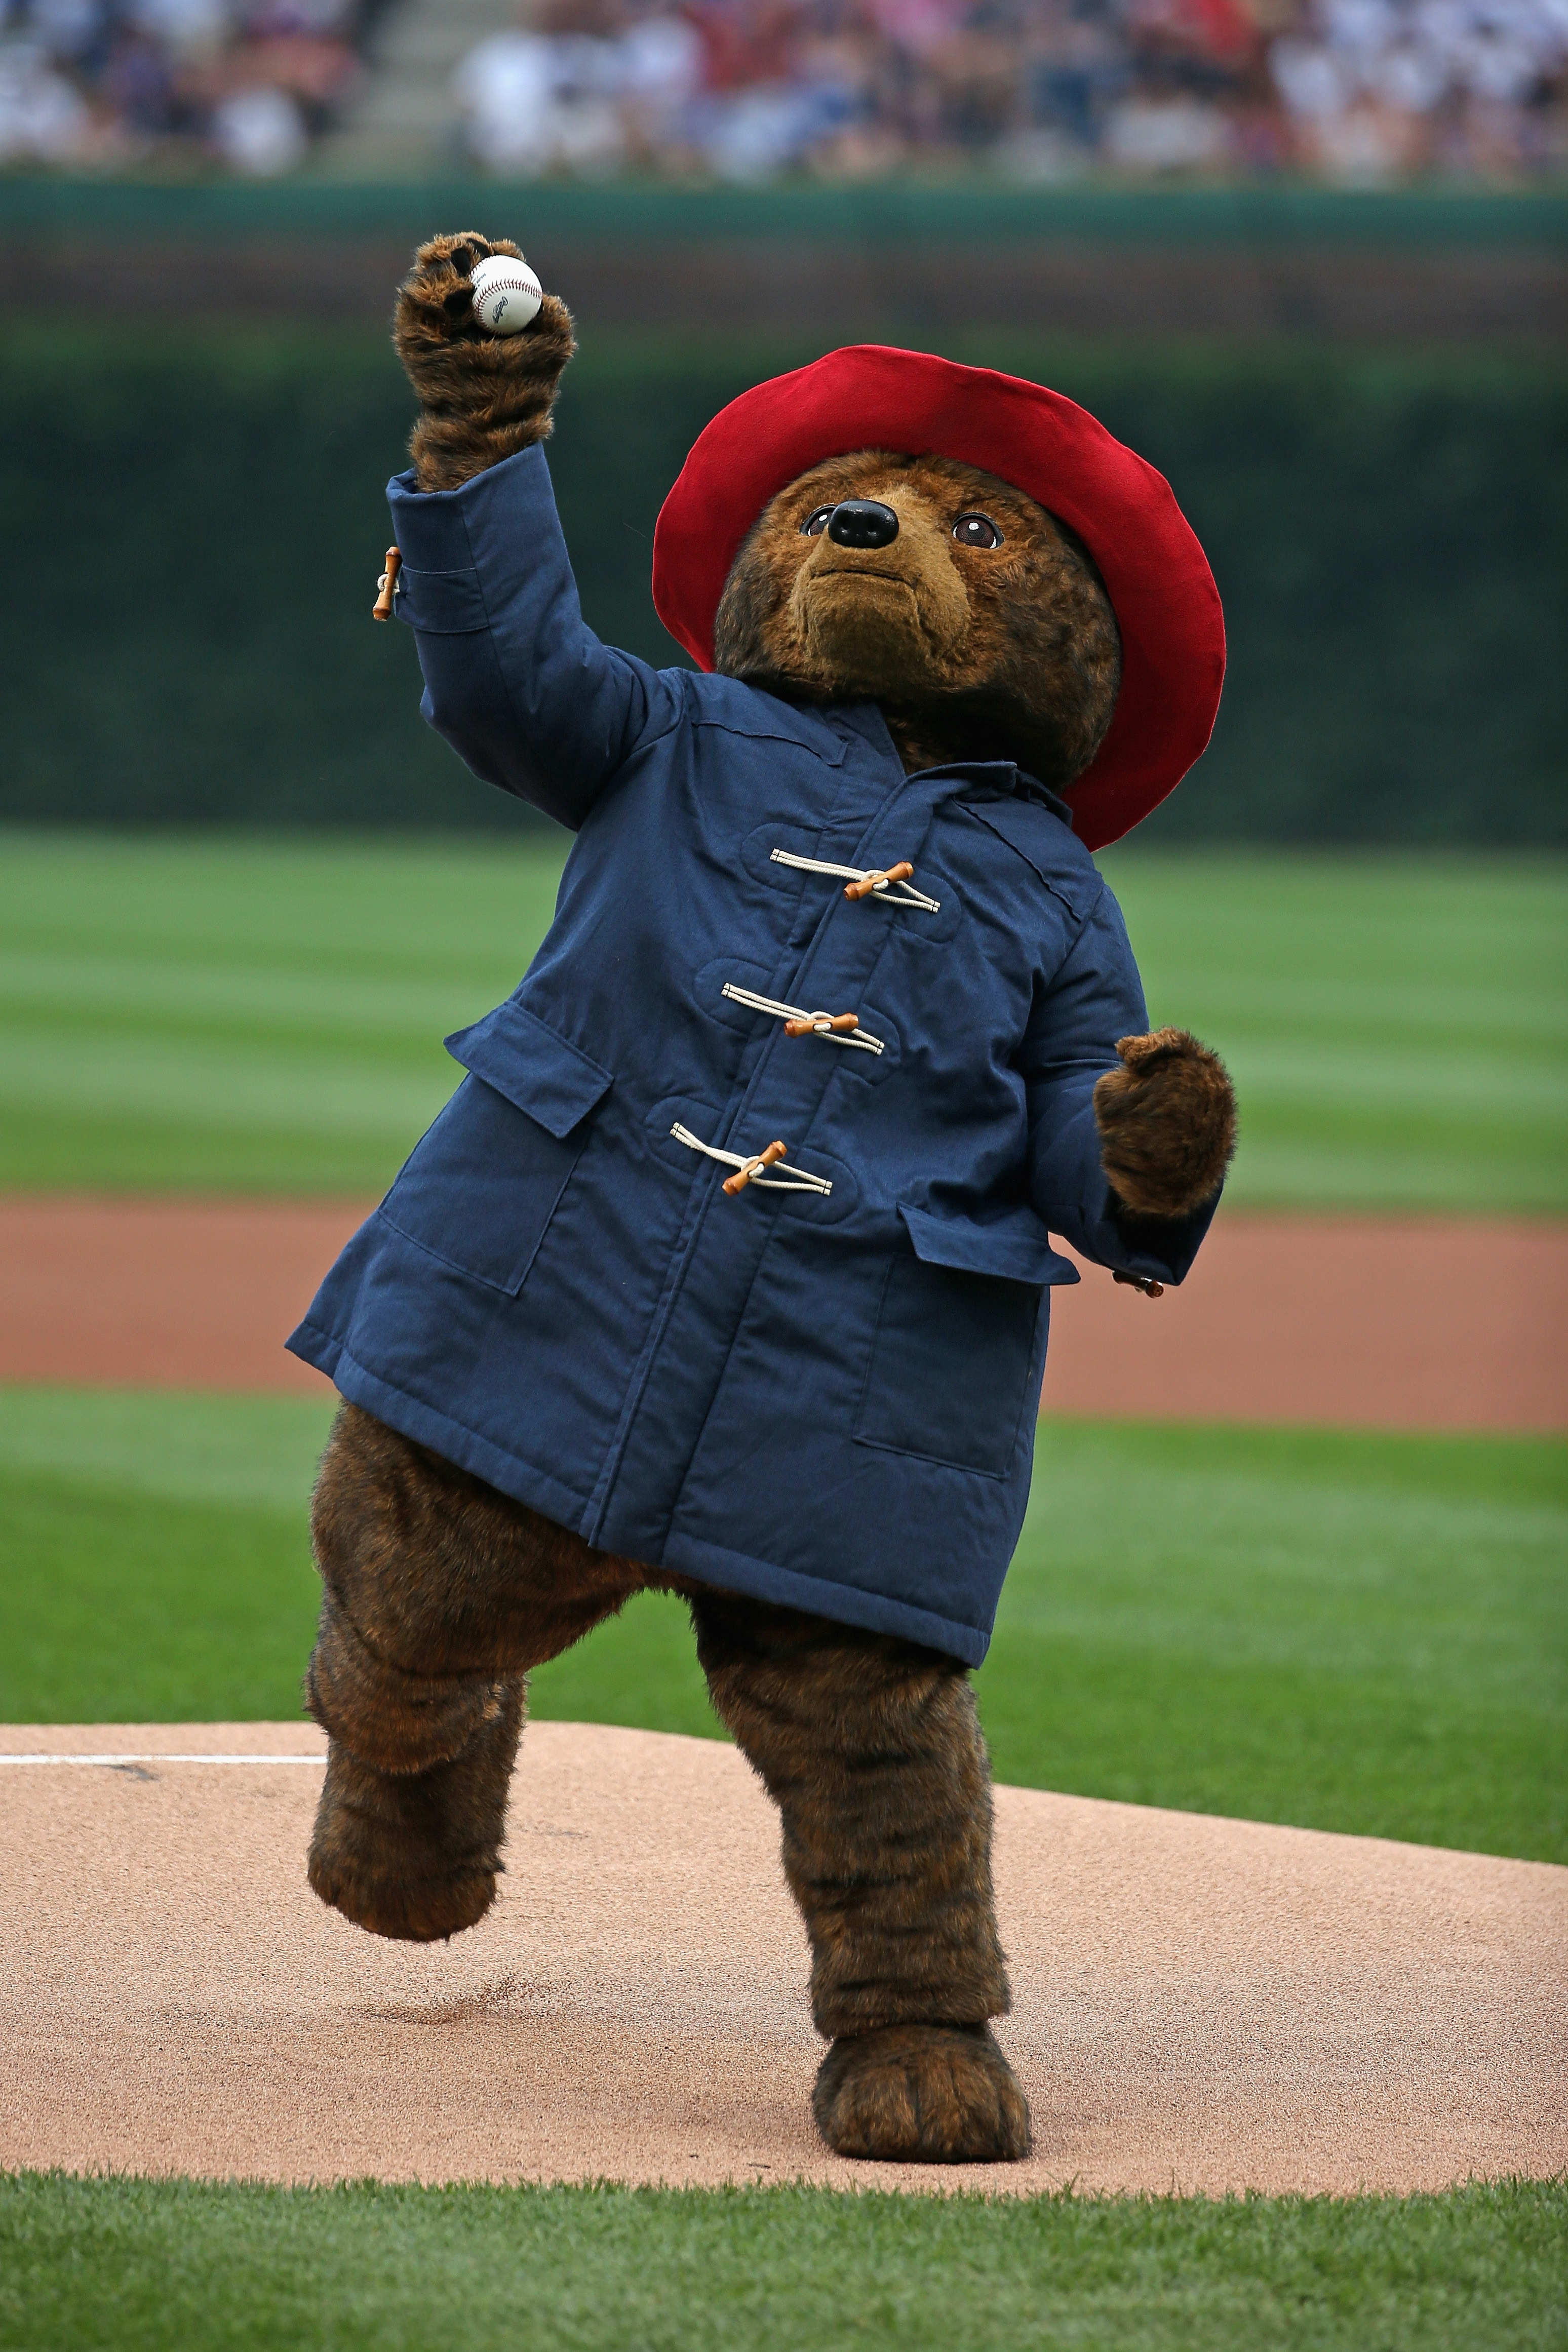 Cubs prospect: Paddington Bear throws out a ceremonial first pitch before a game between the Chicago Cubs and the Los Angeles Dodgers on Thursday at Wrigley Field in Chicago.